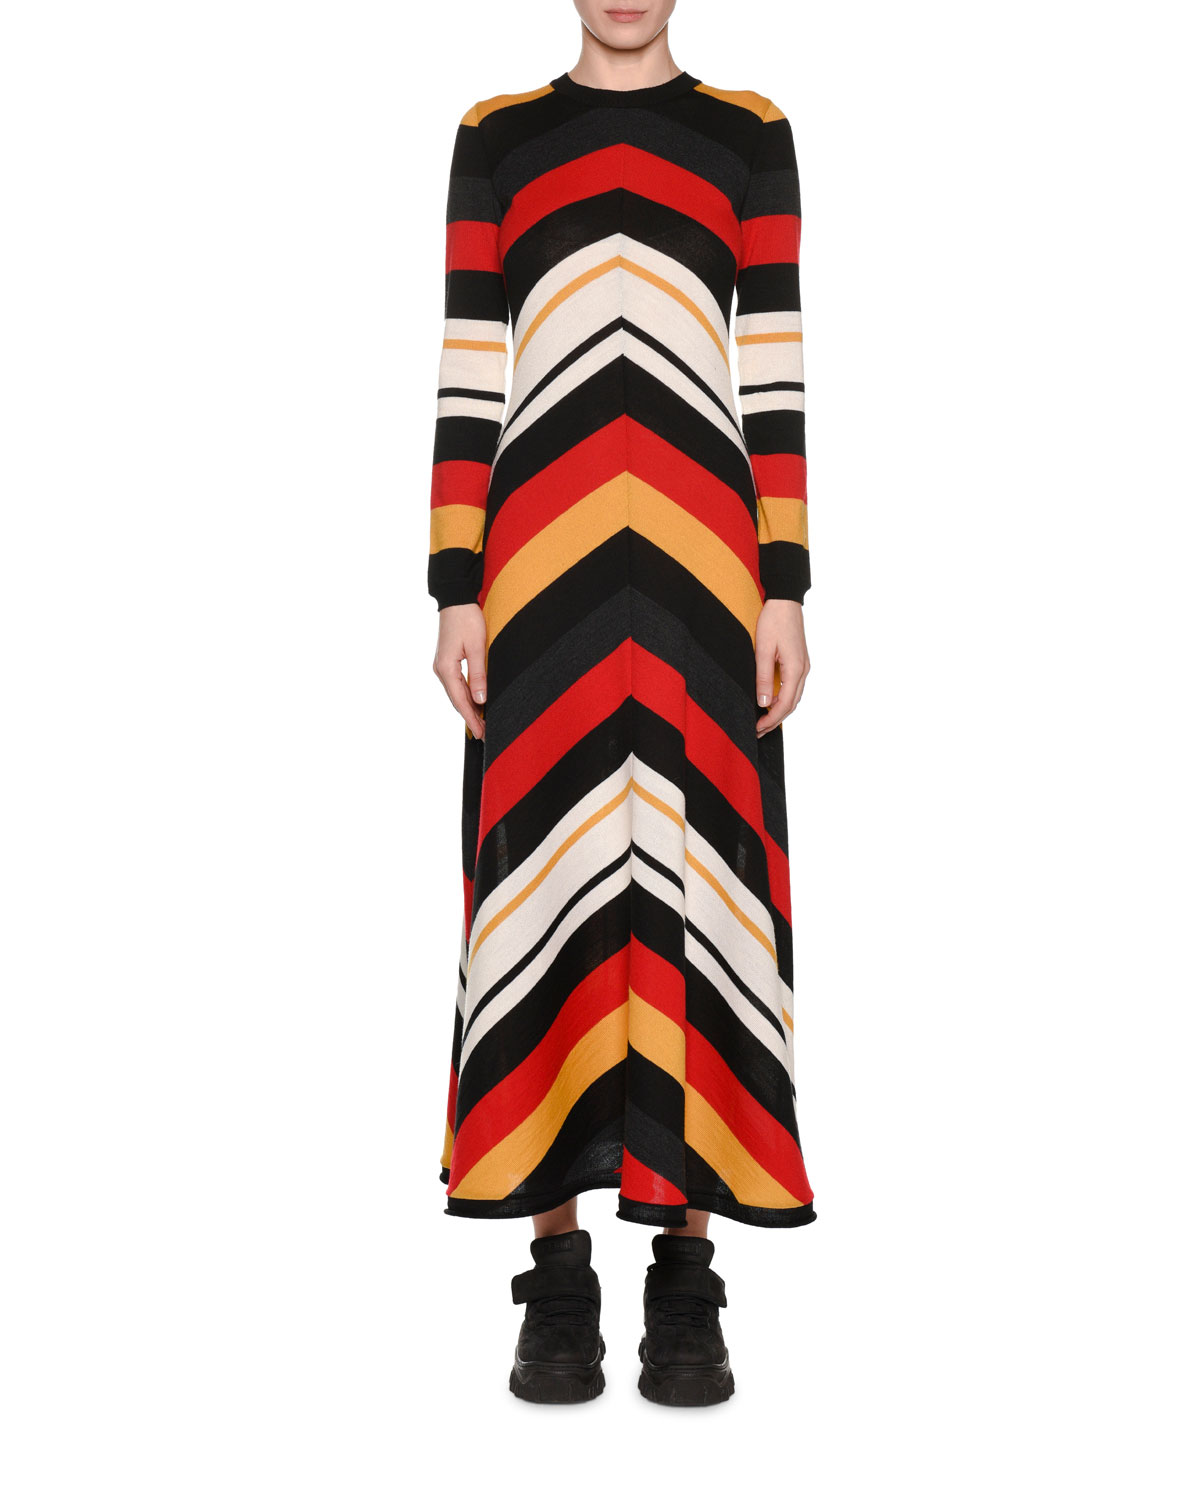 Striped Knit Long Dress With Long Sleeves, Multi Pattern